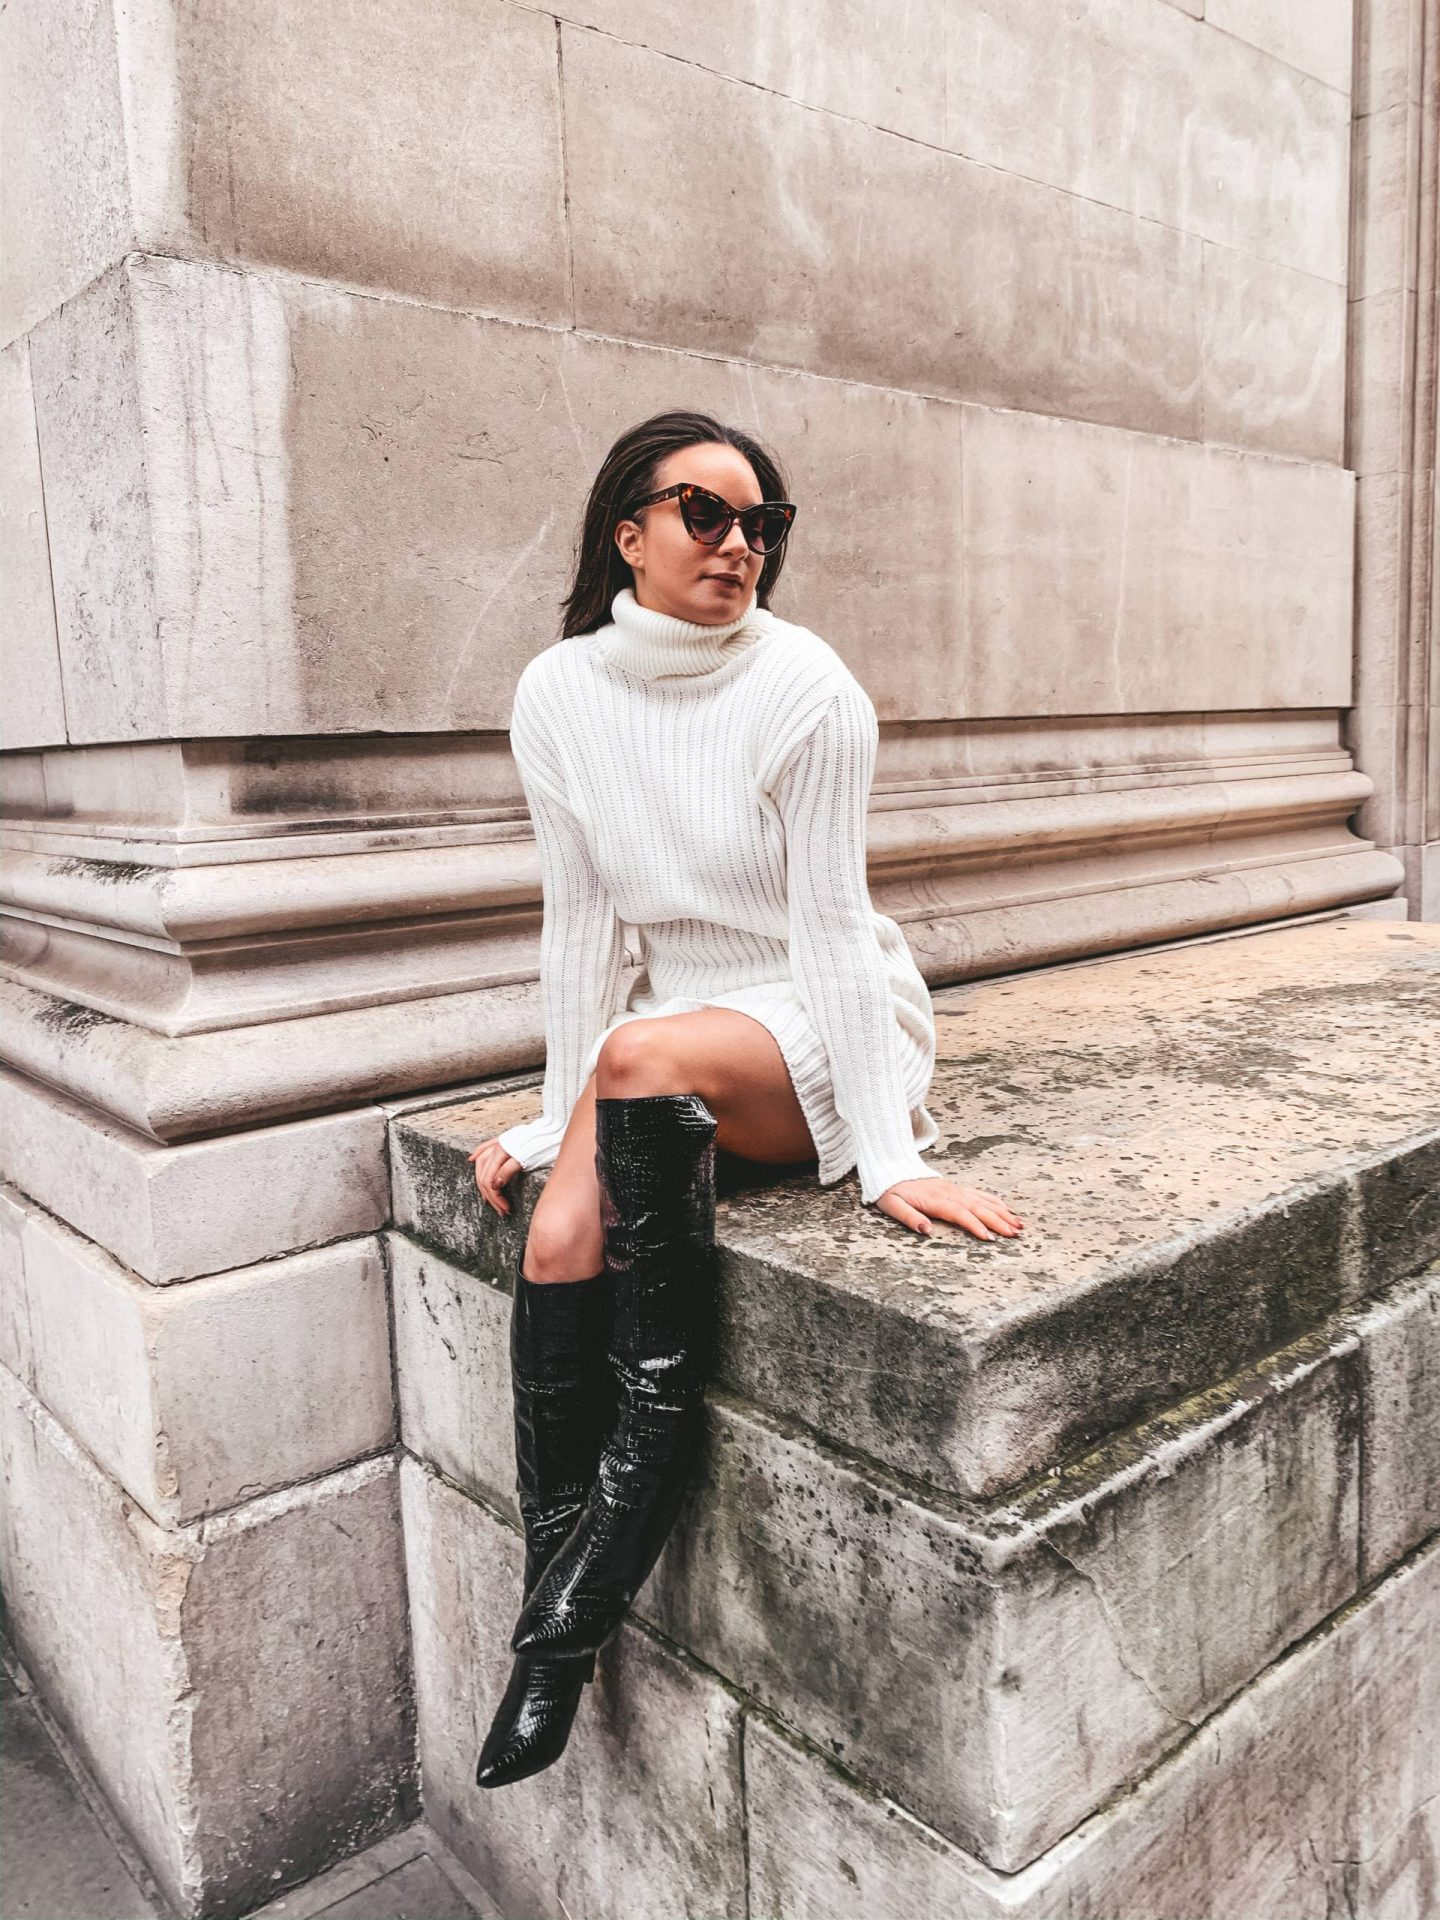 Jumper dress with black boots and sunglasses